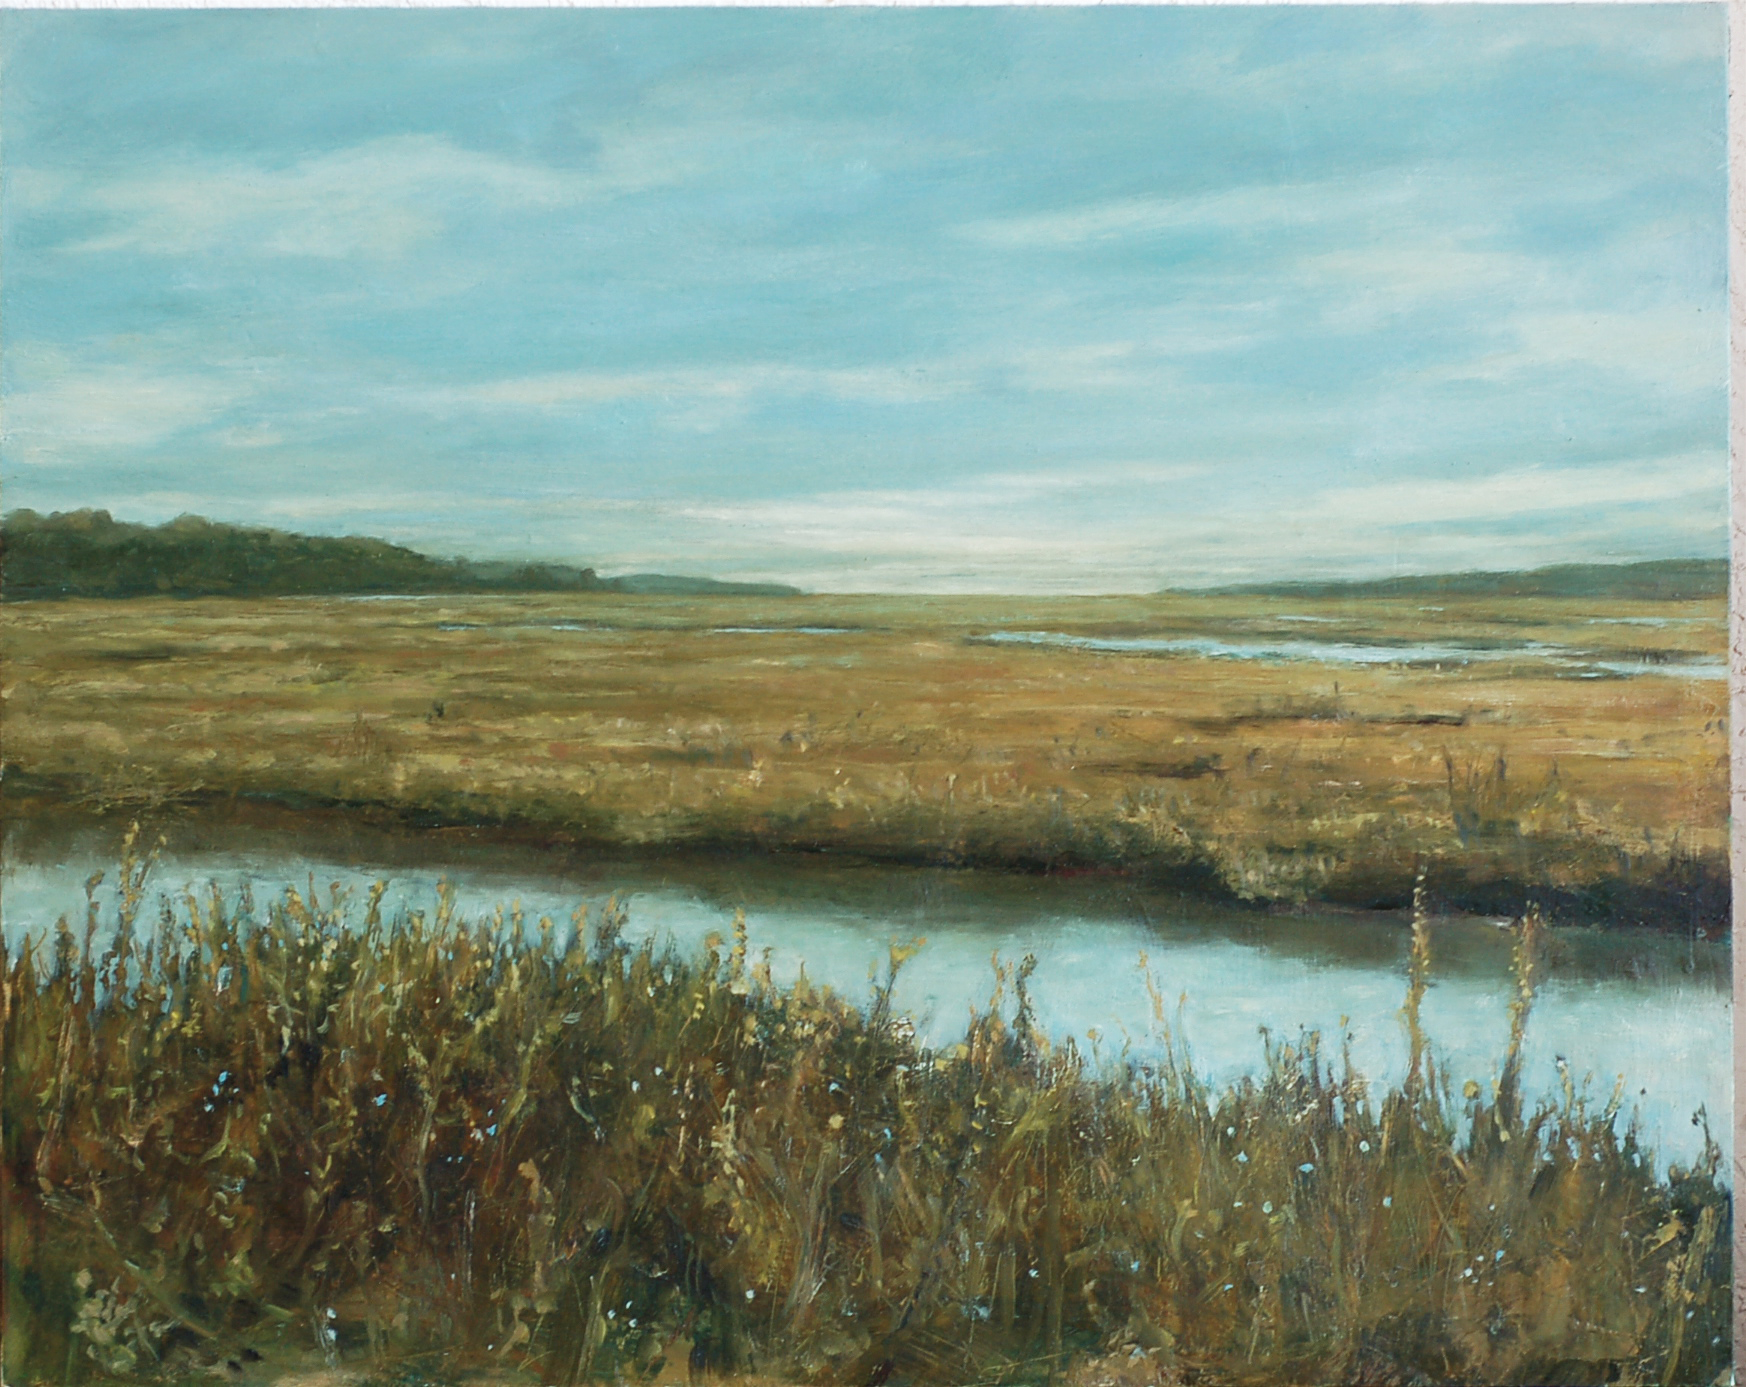 Marshlands, Tomales Bay